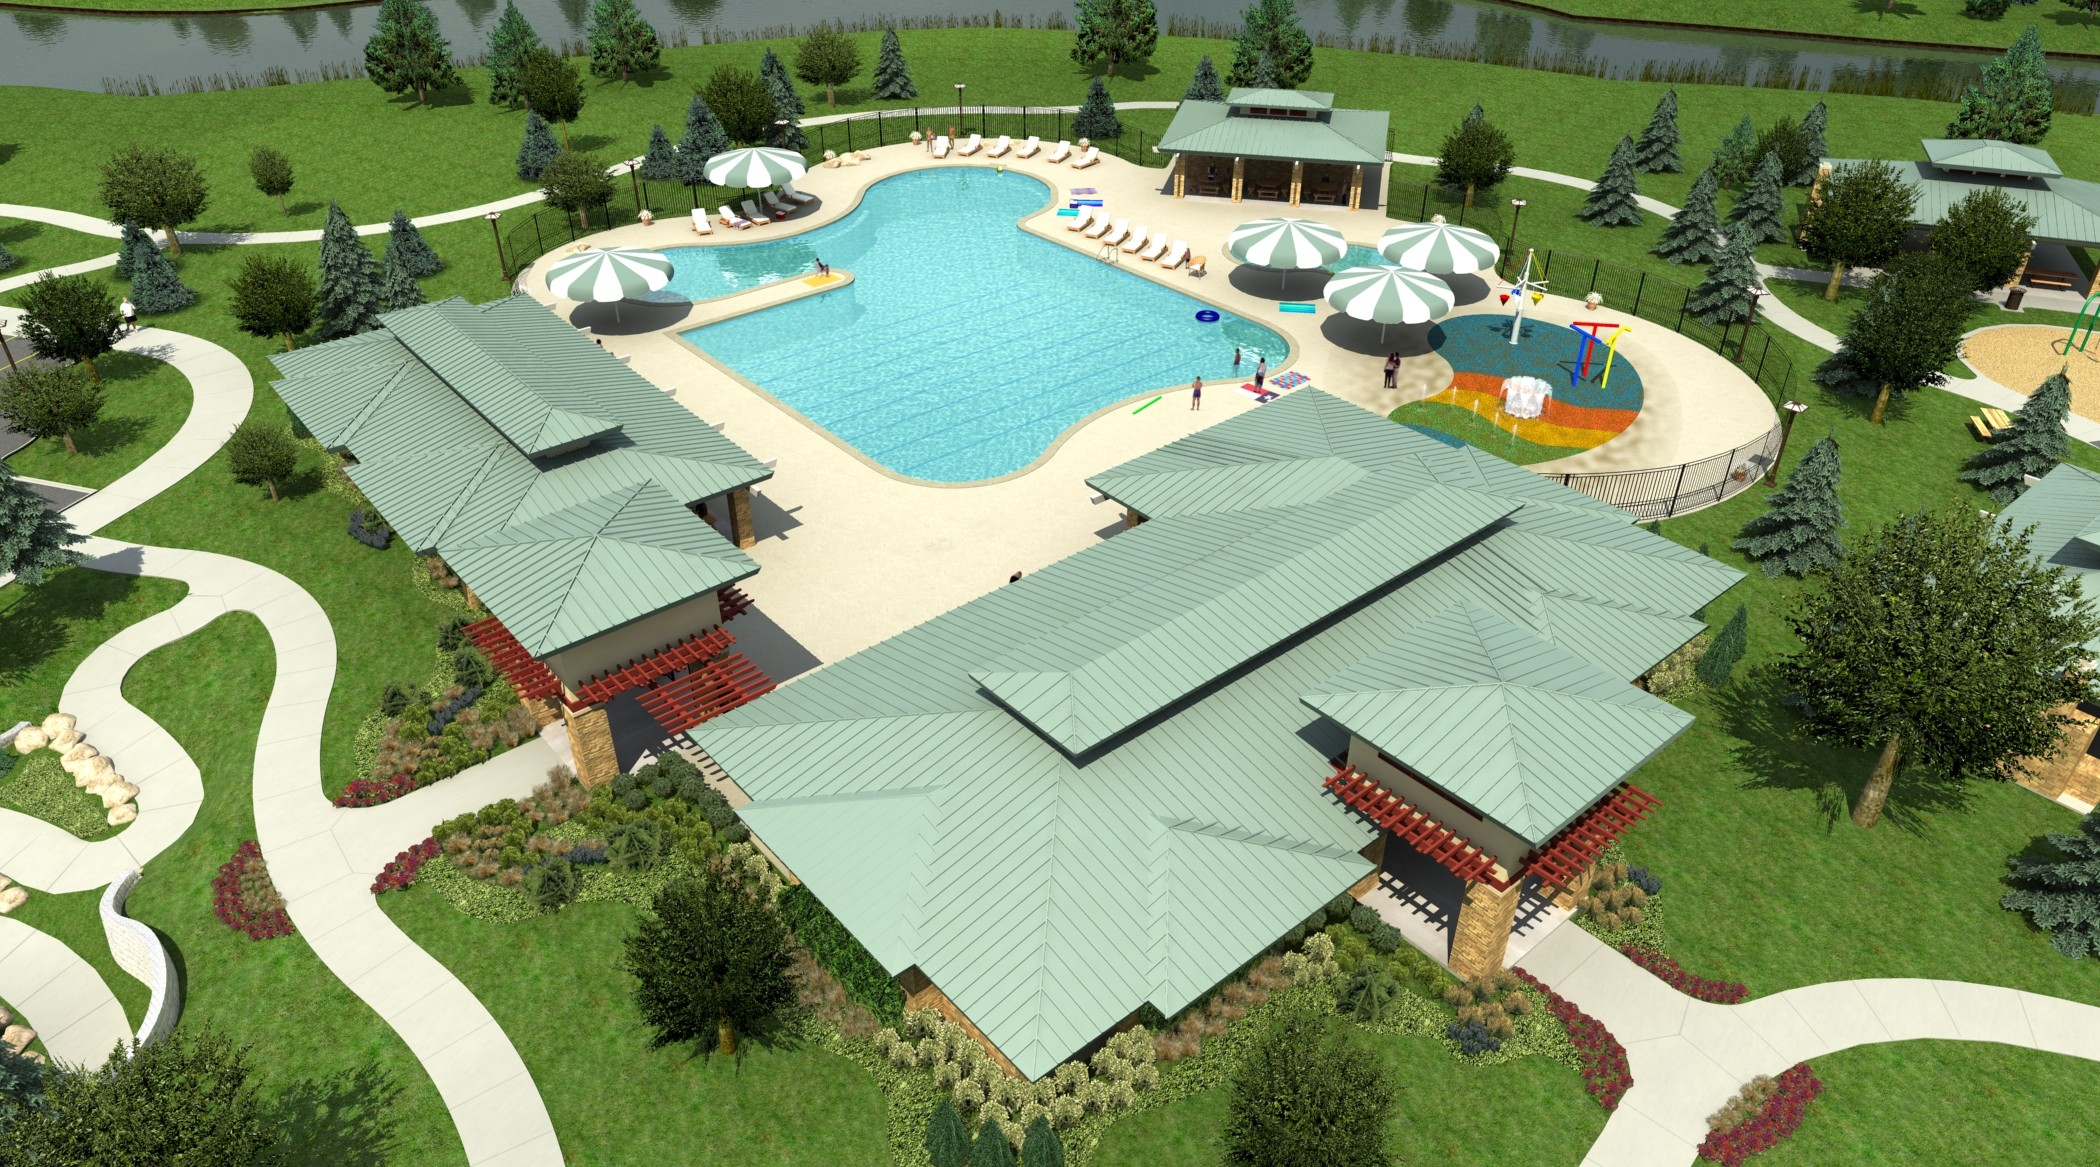 Southern Trails Mixes Small Neighborhood Feel With Big Community Amenities